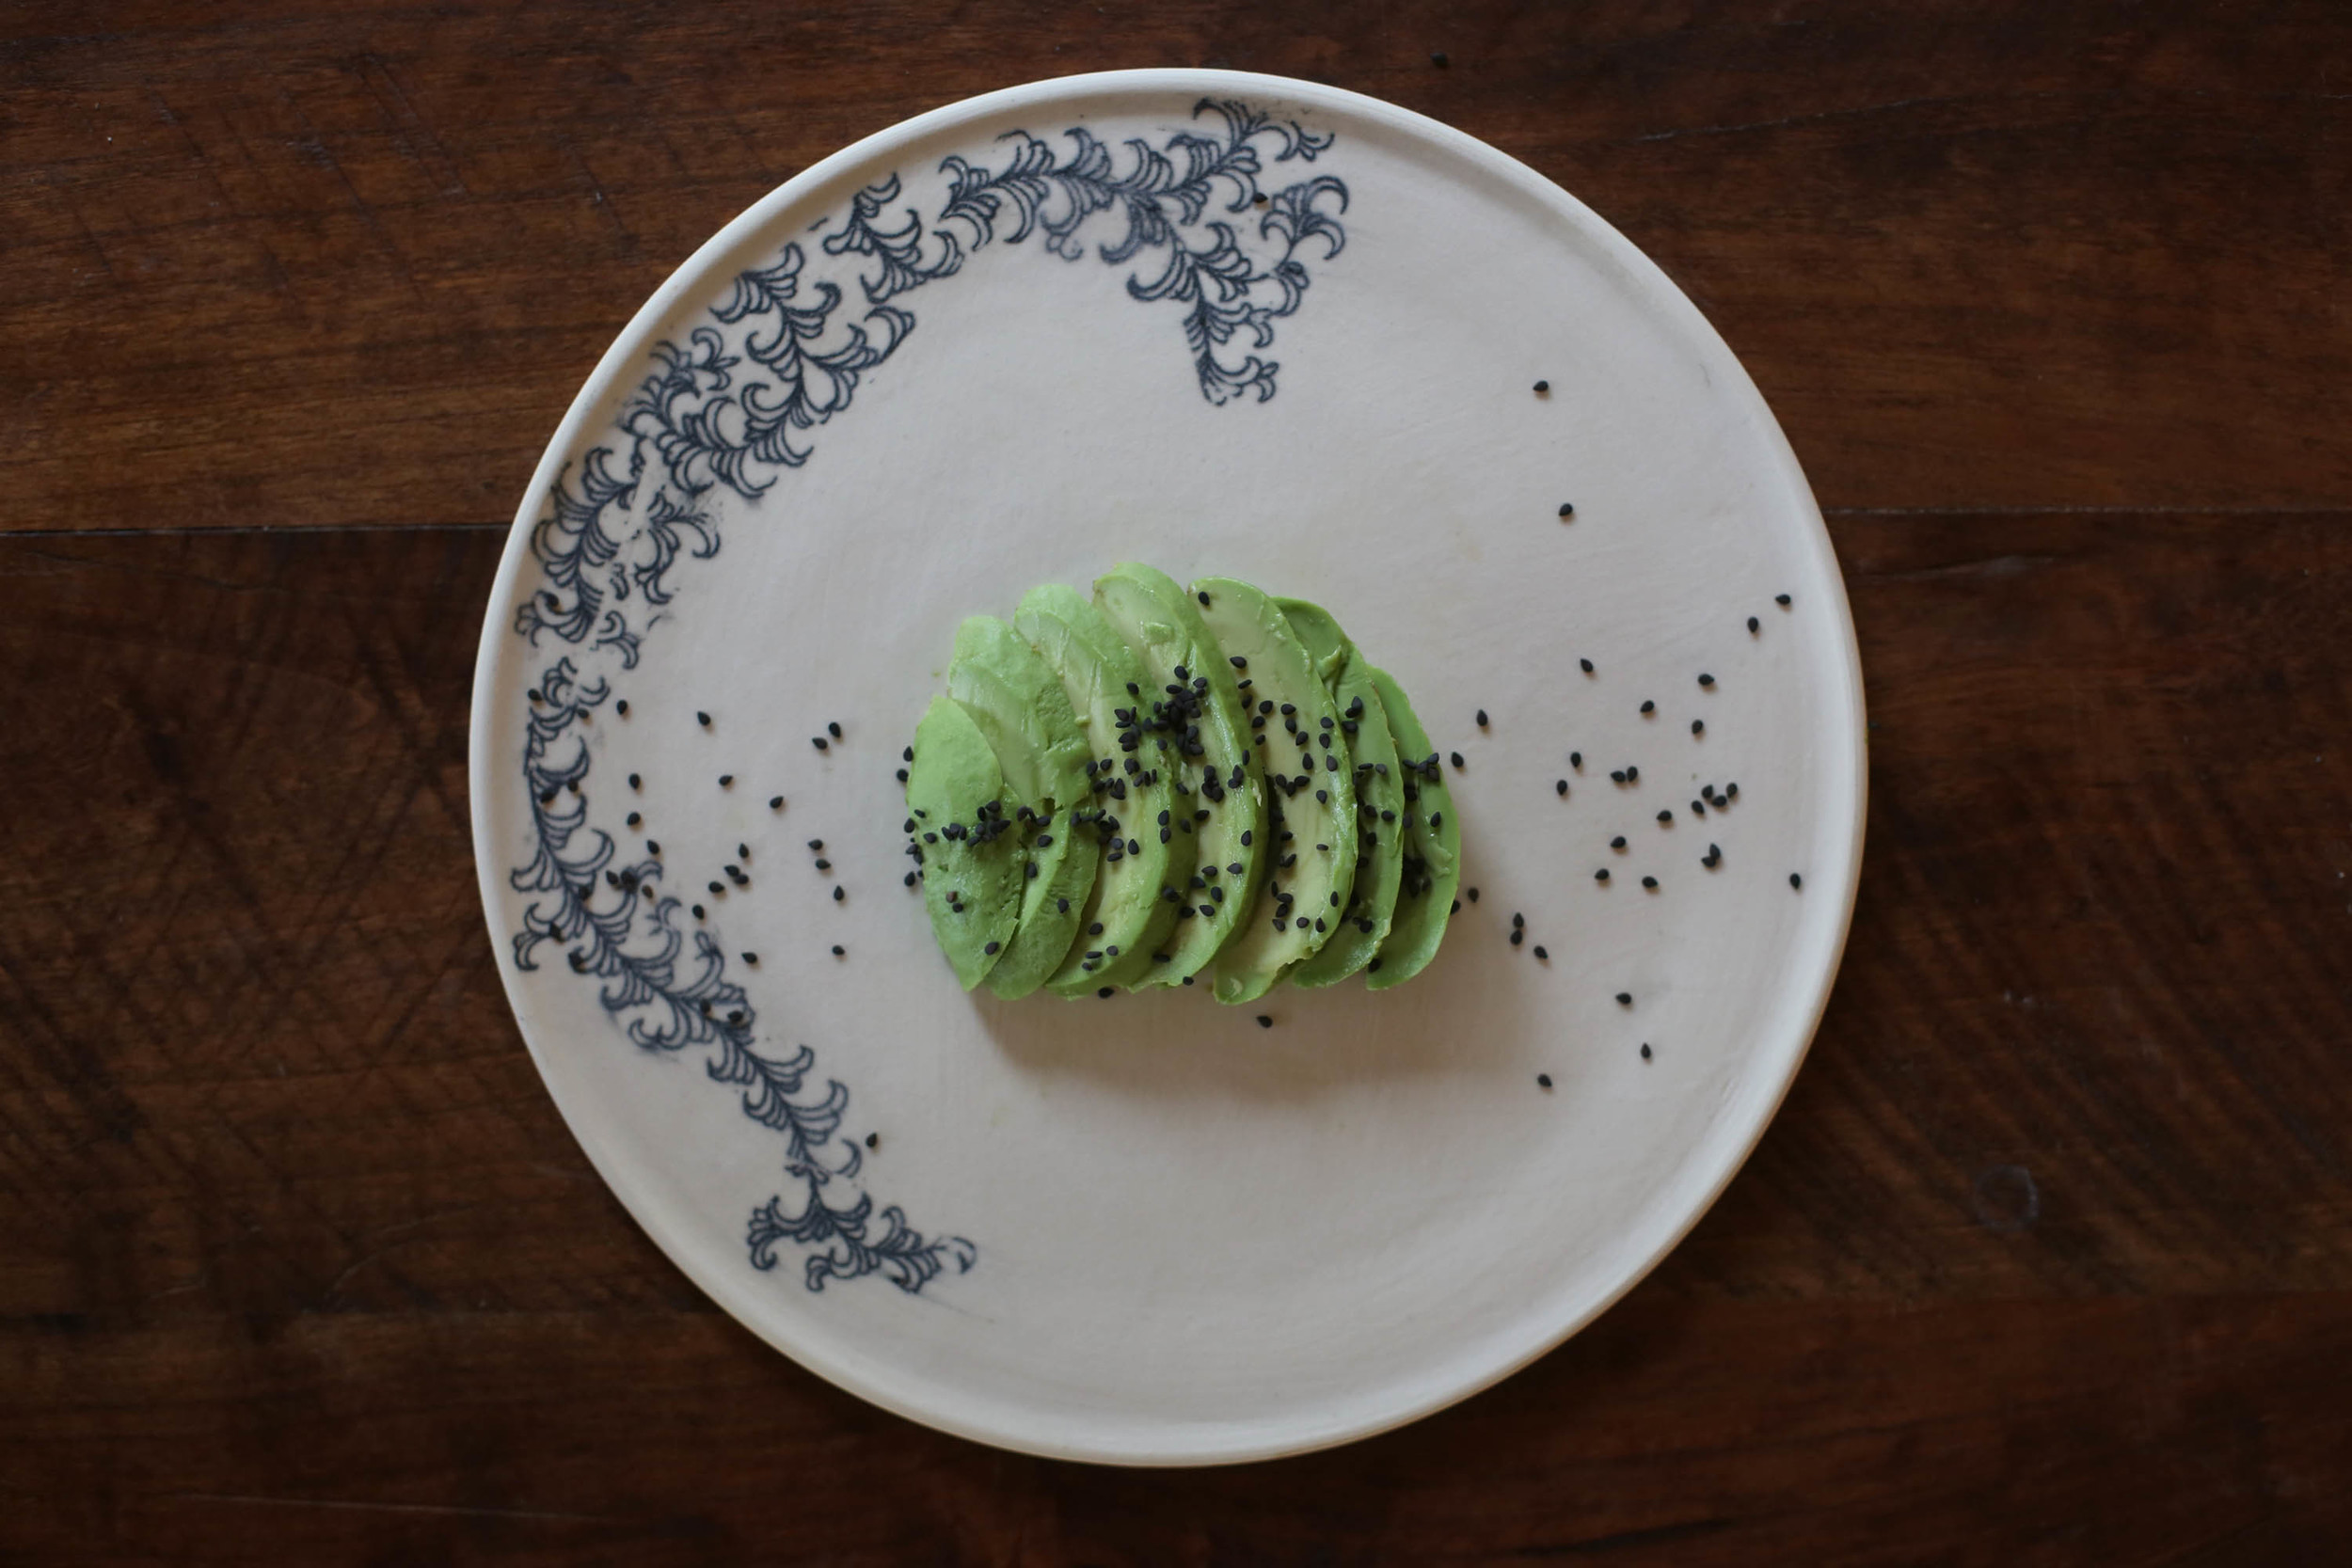 Sliced Avocado with sesame seeds.